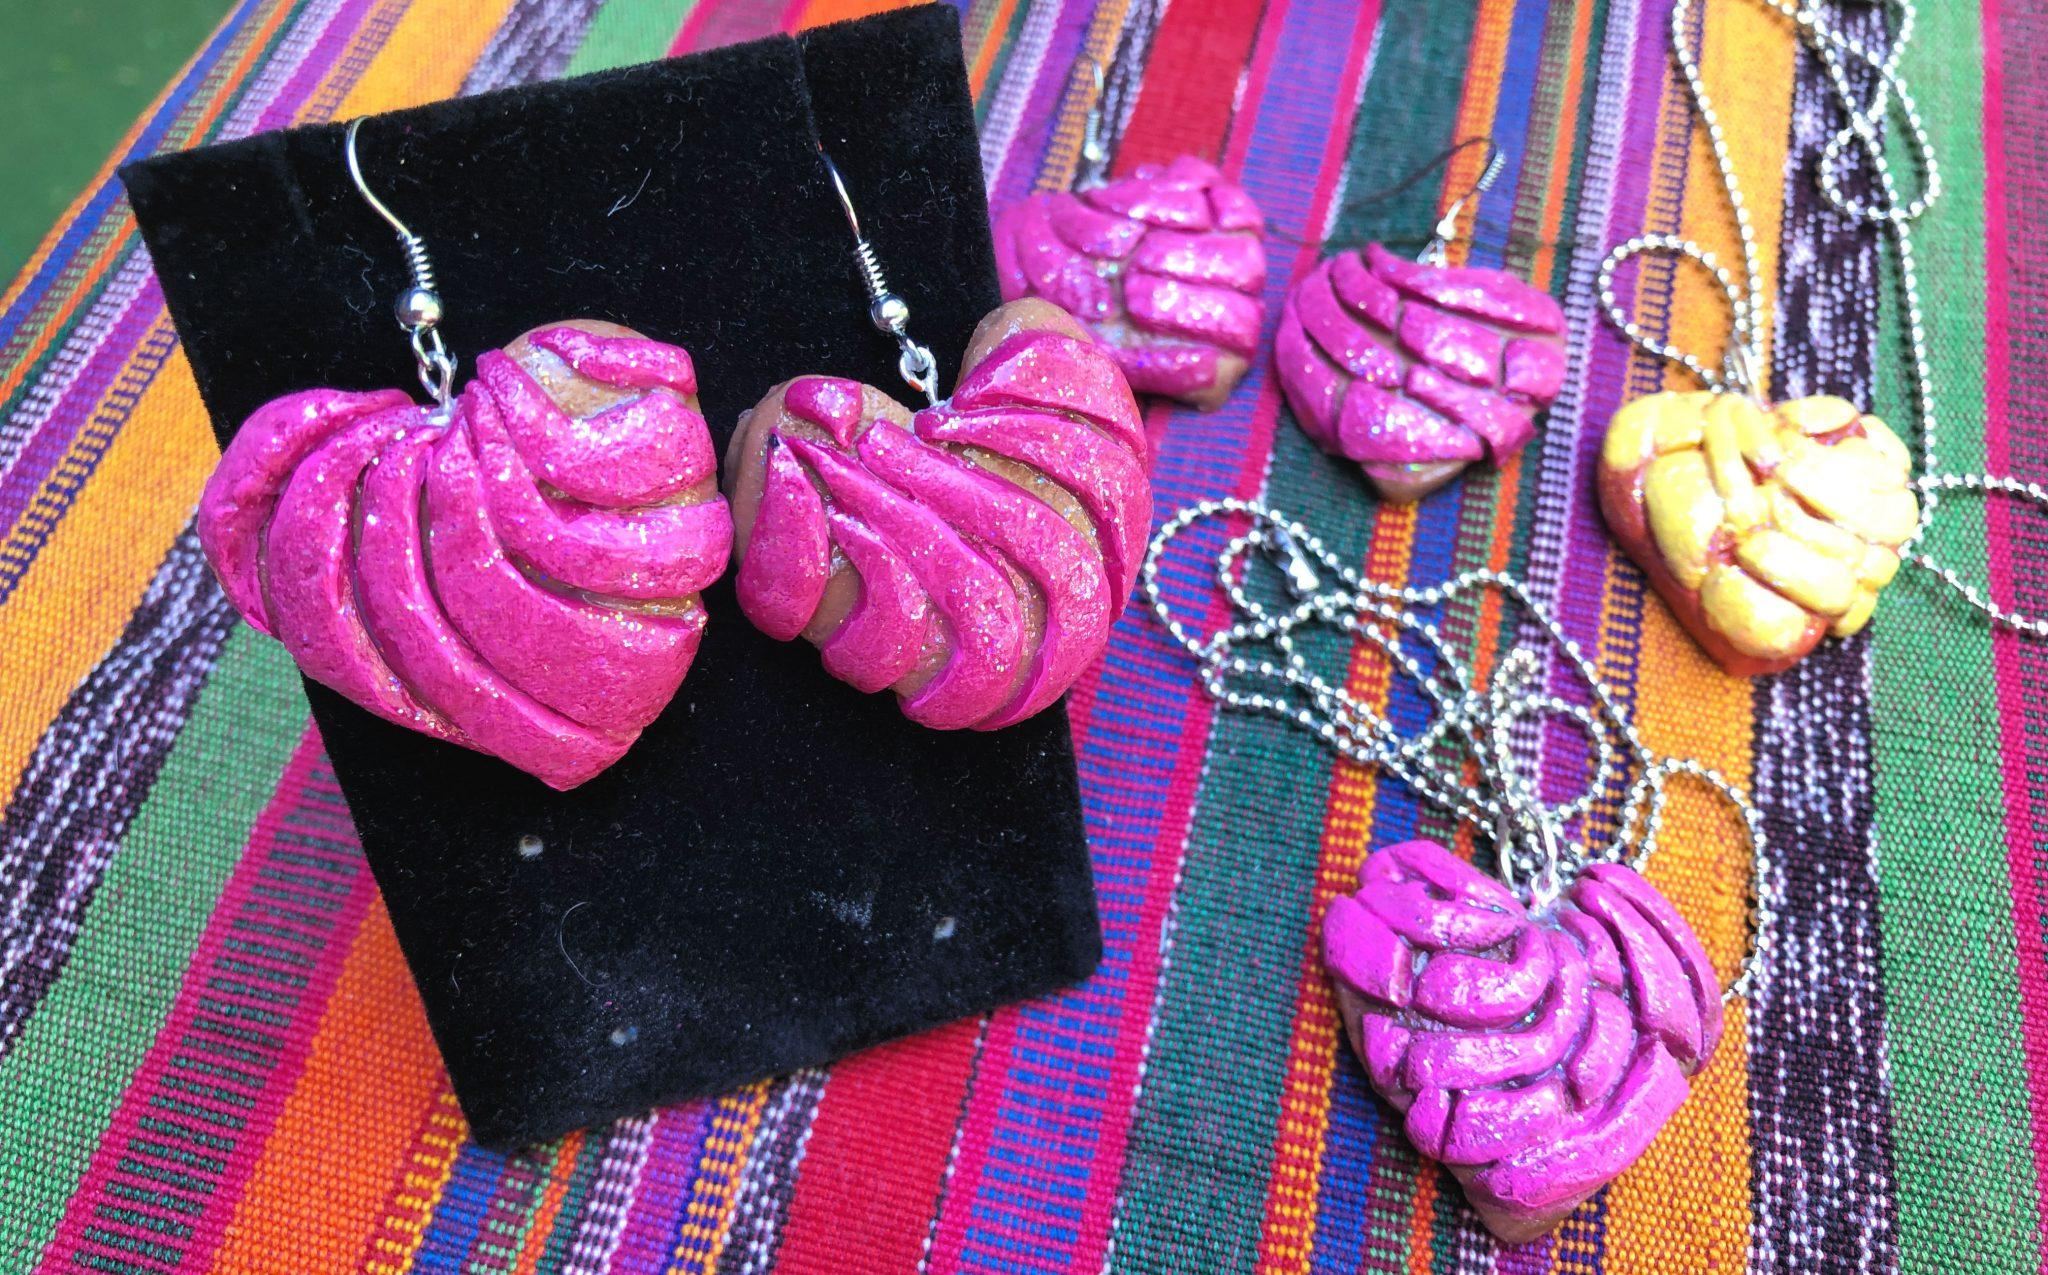 How to make concha jewelry! #craftychica #conchaearrings #mexicanpastries #pandulce #polymerclay